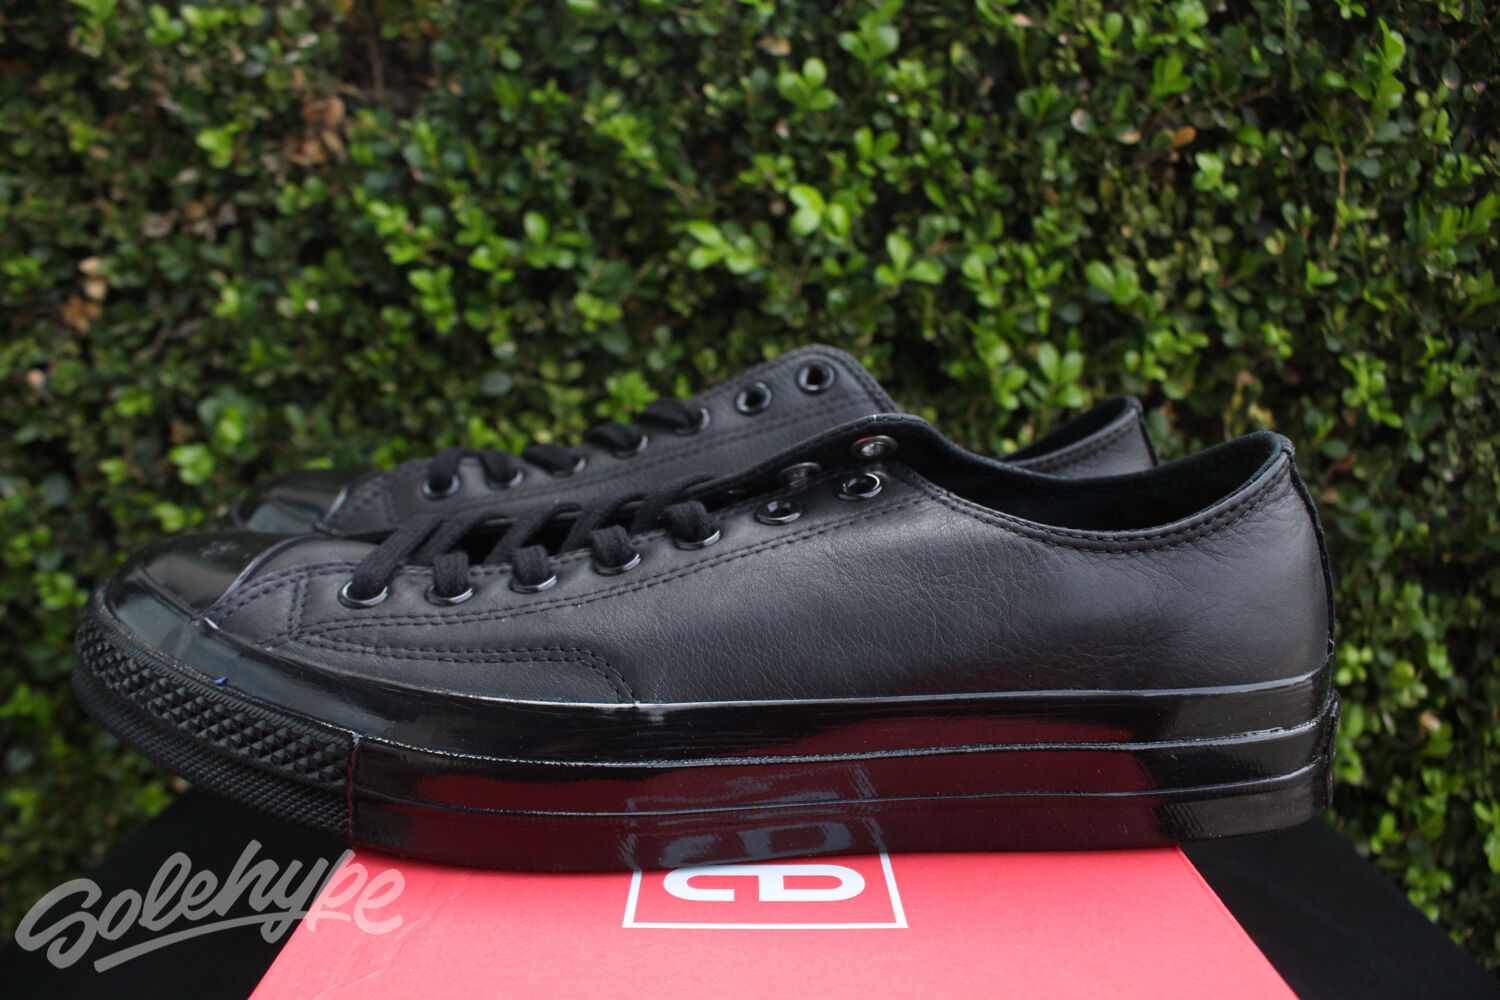 CONVERSE CHUCK TAYLOR ALL STAR 70 OX SZ 9.5 LEATHER TRIPLE BLACK LOW TOP 155456C